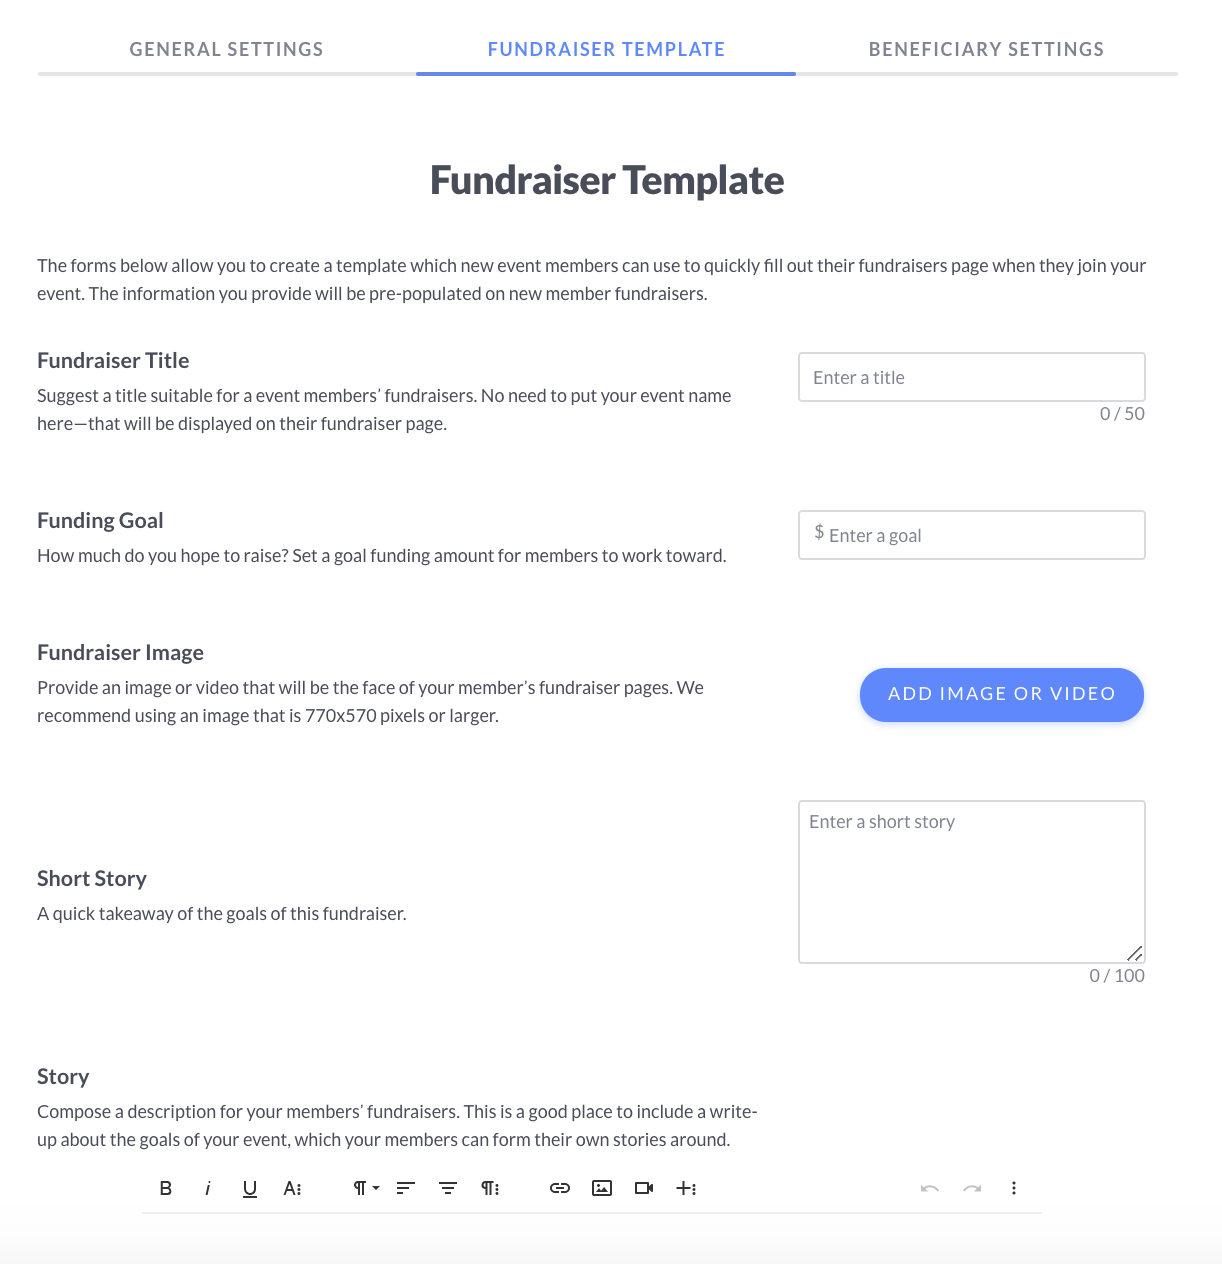 A screenshot of the Fundraiser template page